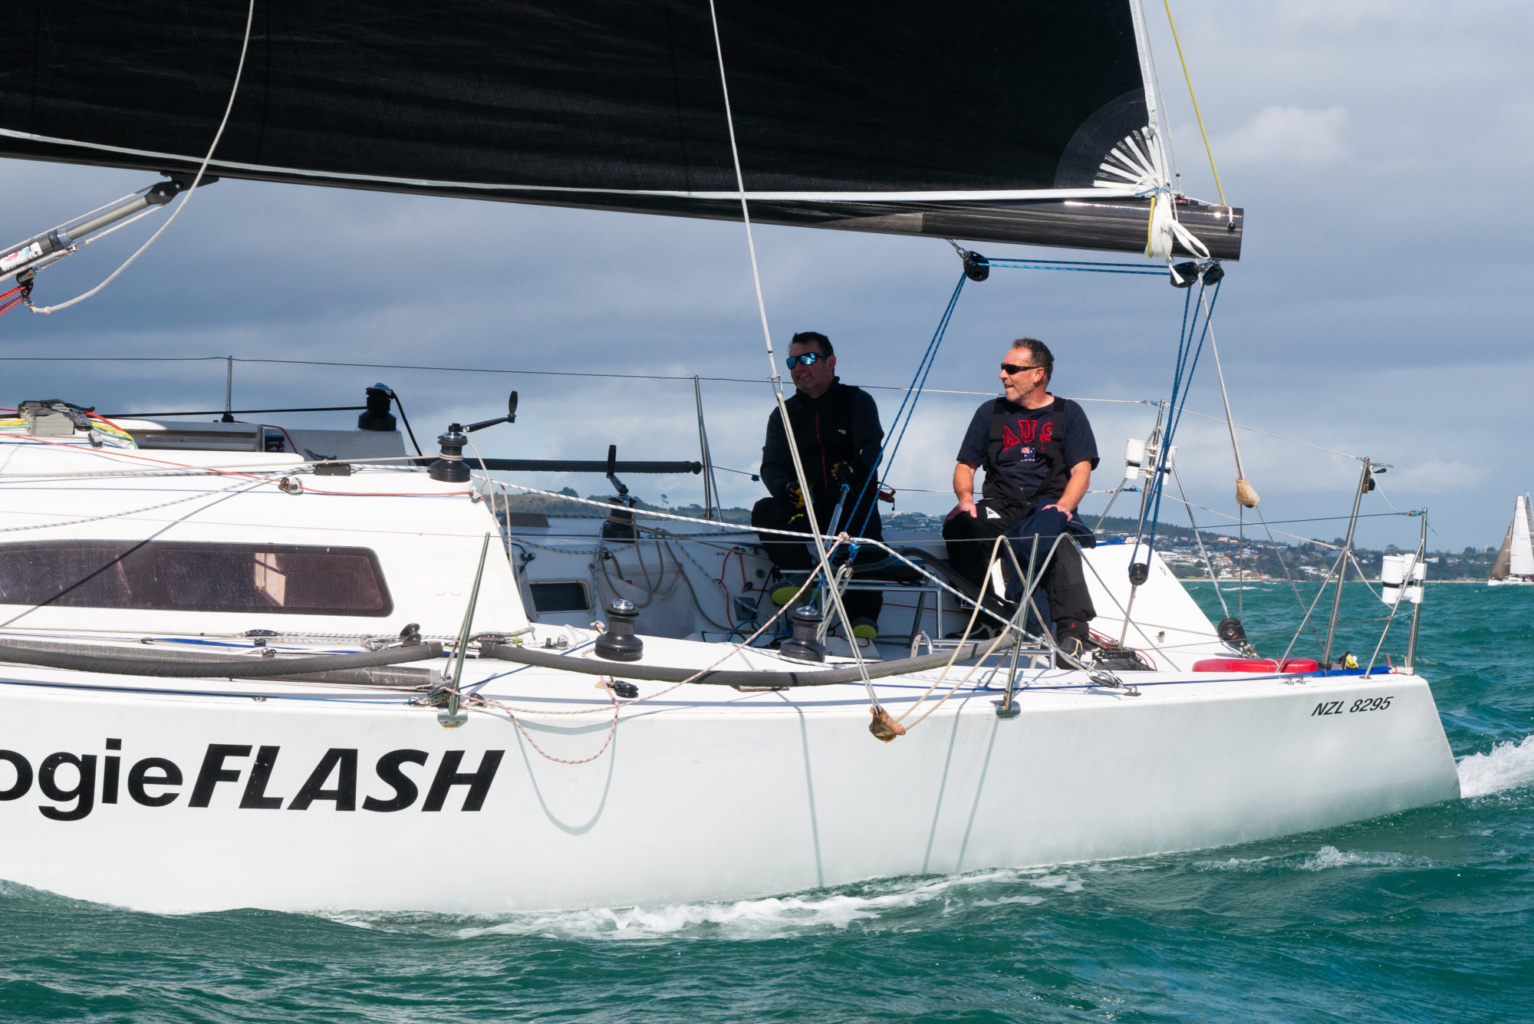 Boogie Flash NZL North Sails 3Di